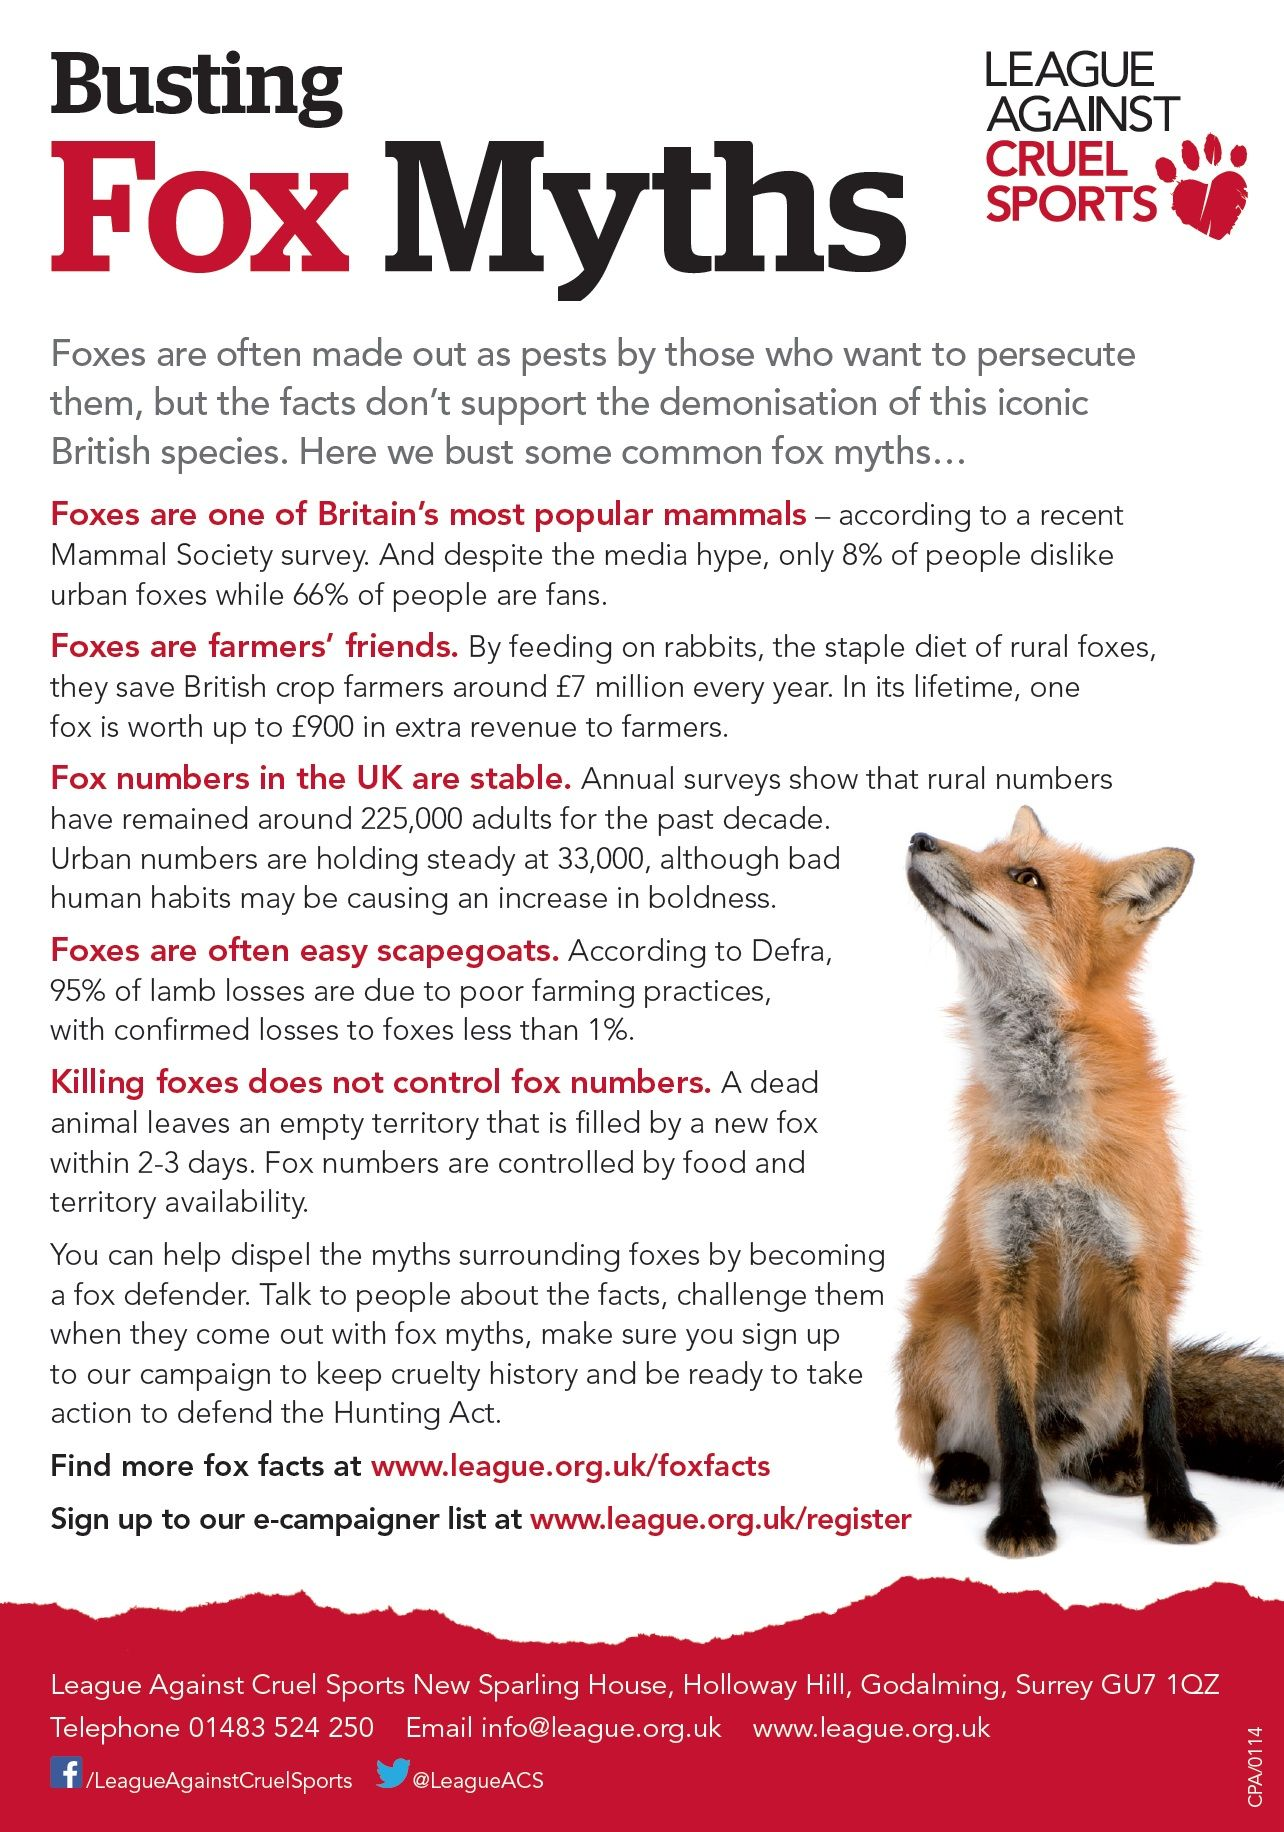 Support us in busting fox myths for #FoxyFeb! www.league.org.uk/foxyfeb